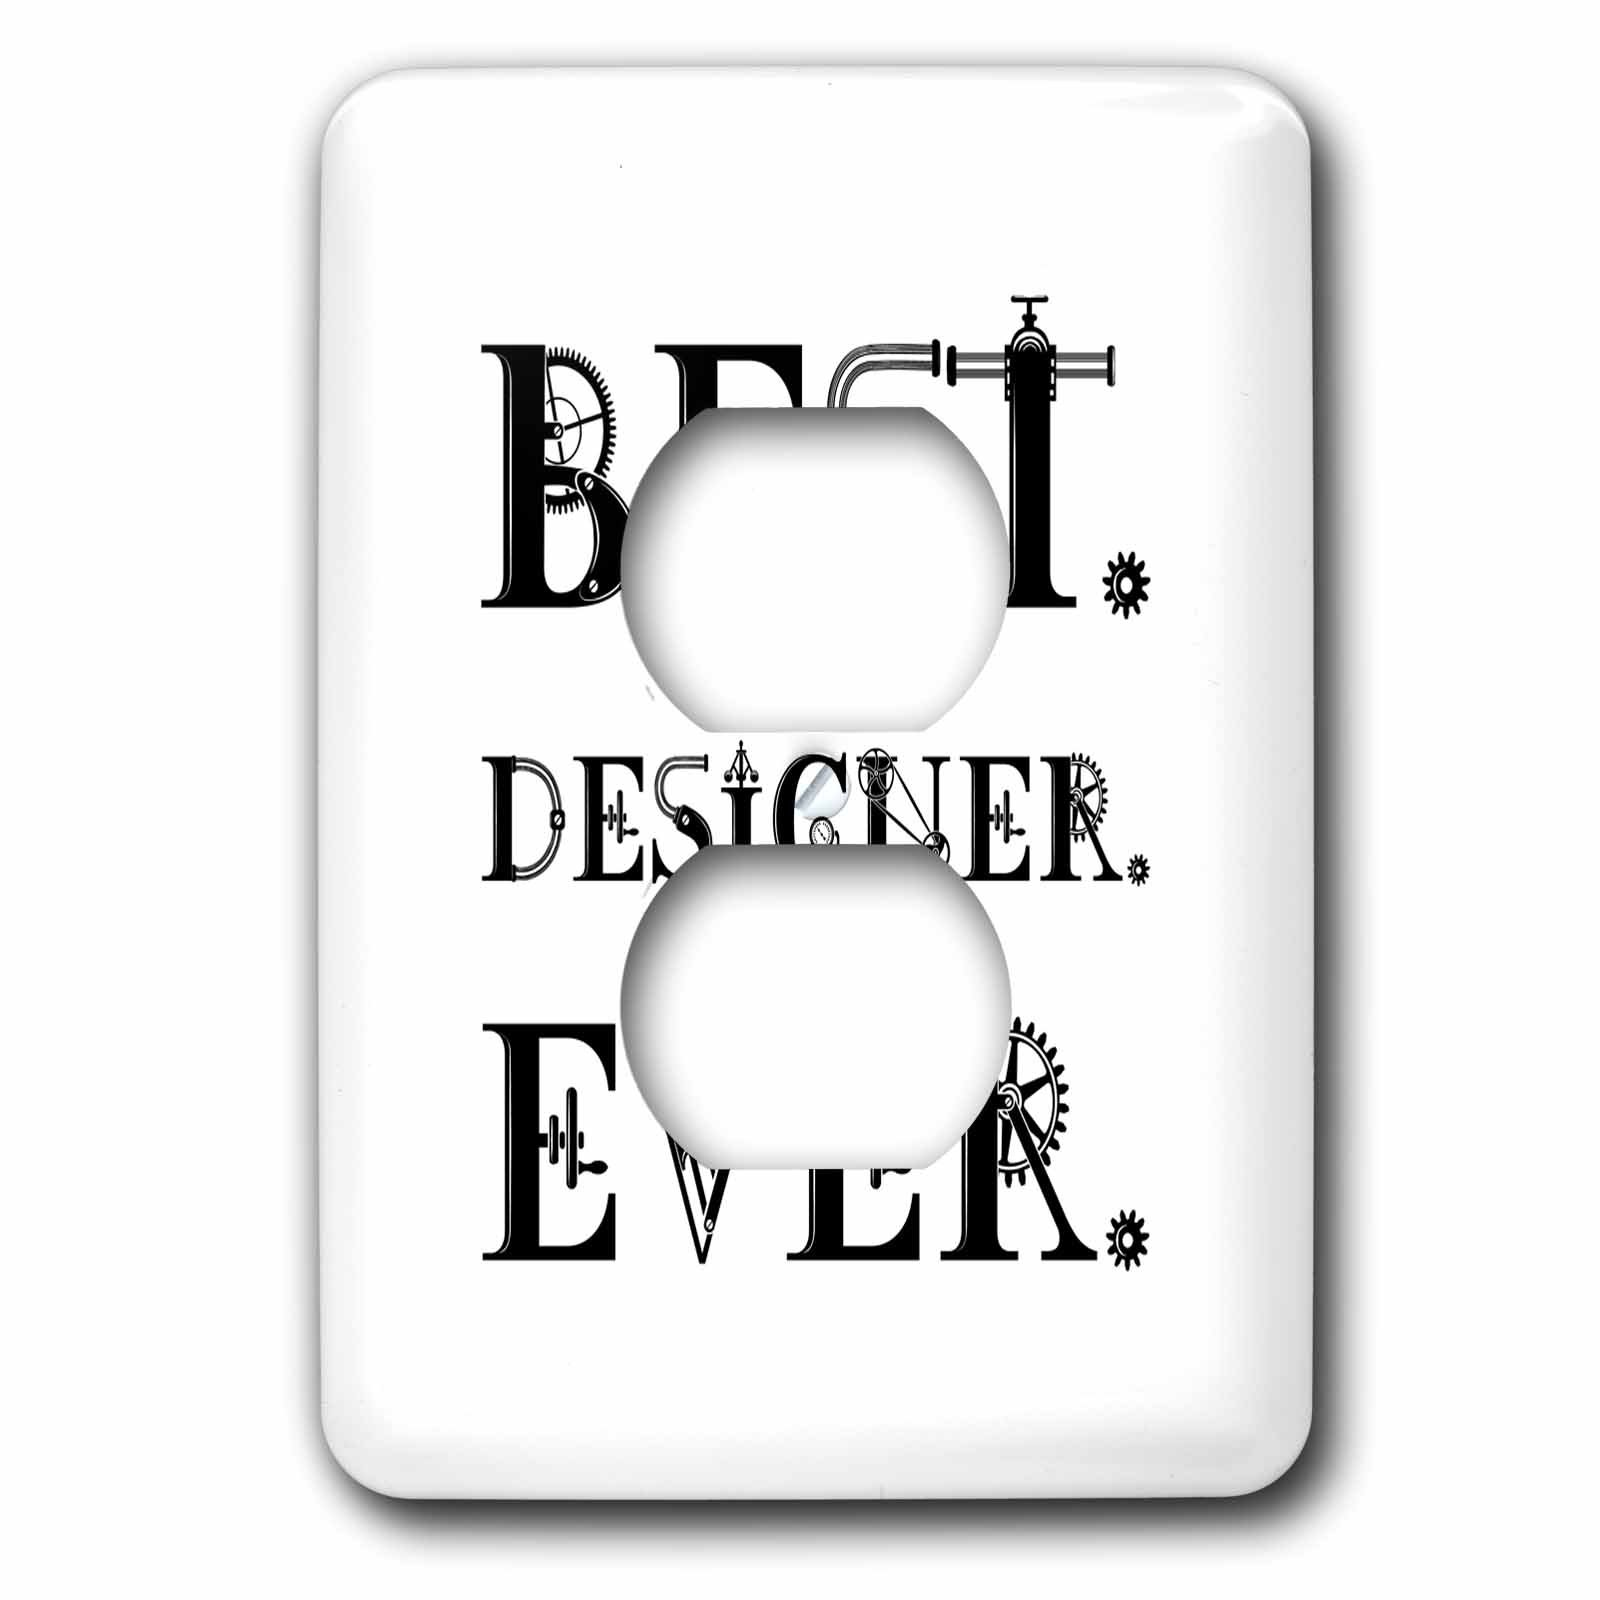 3dRose Alexis Design - Best Professional Ever - Best. Designer. Ever. decorative text on background white - Light Switch Covers - 2 plug outlet cover (lsp_286100_6)